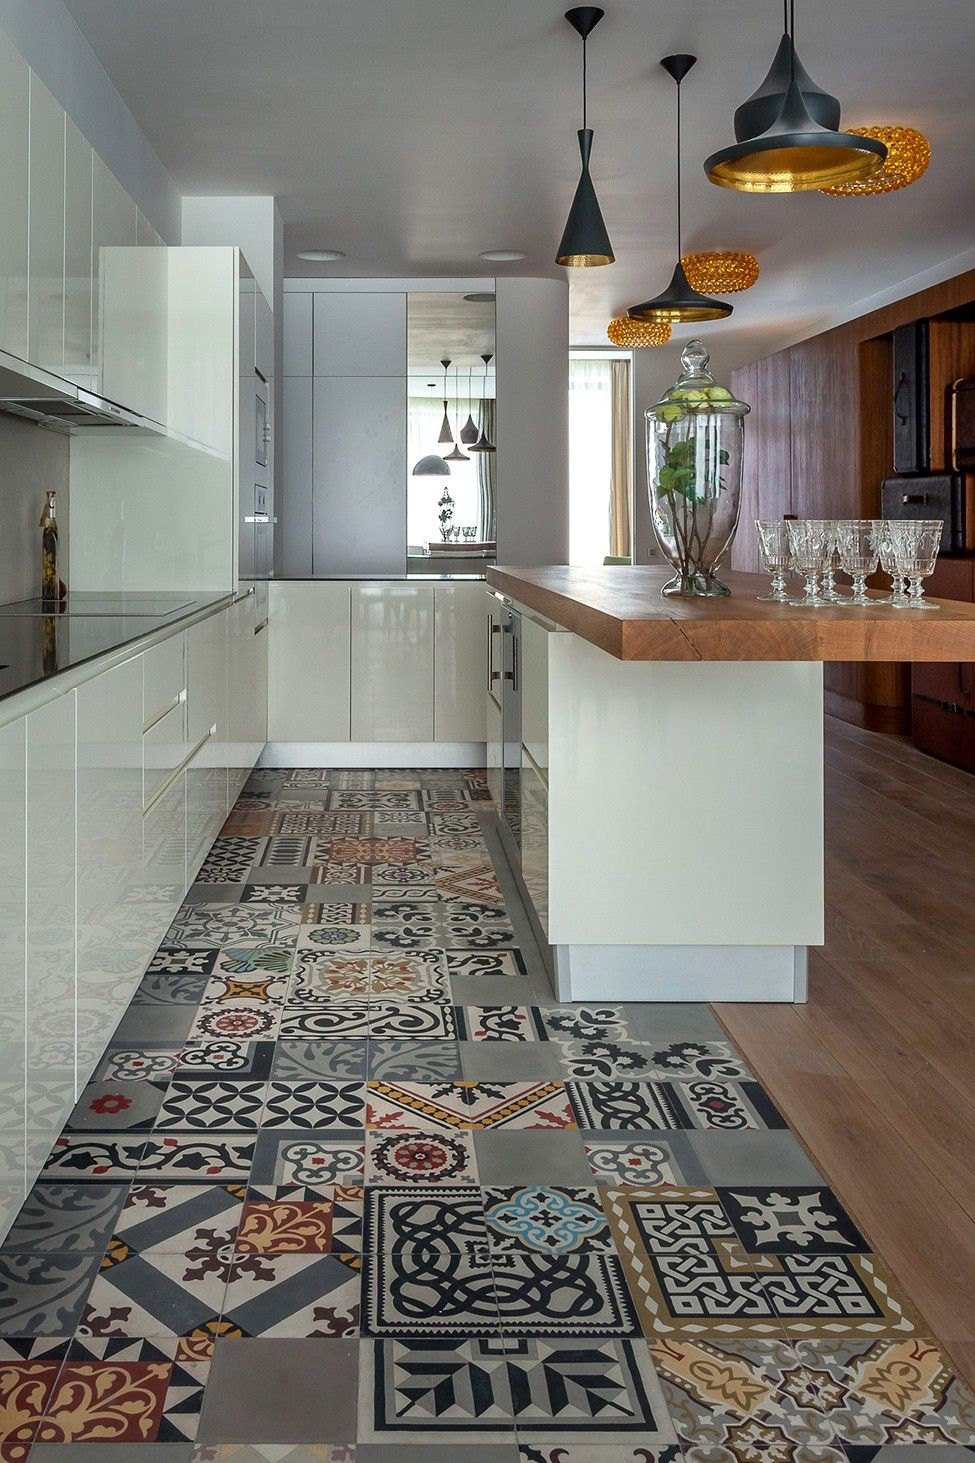 Distinctive And Captivating Traveler S Apartment In Moscow Freshome Com Kitchen Floor Tile Patterns Kitchen